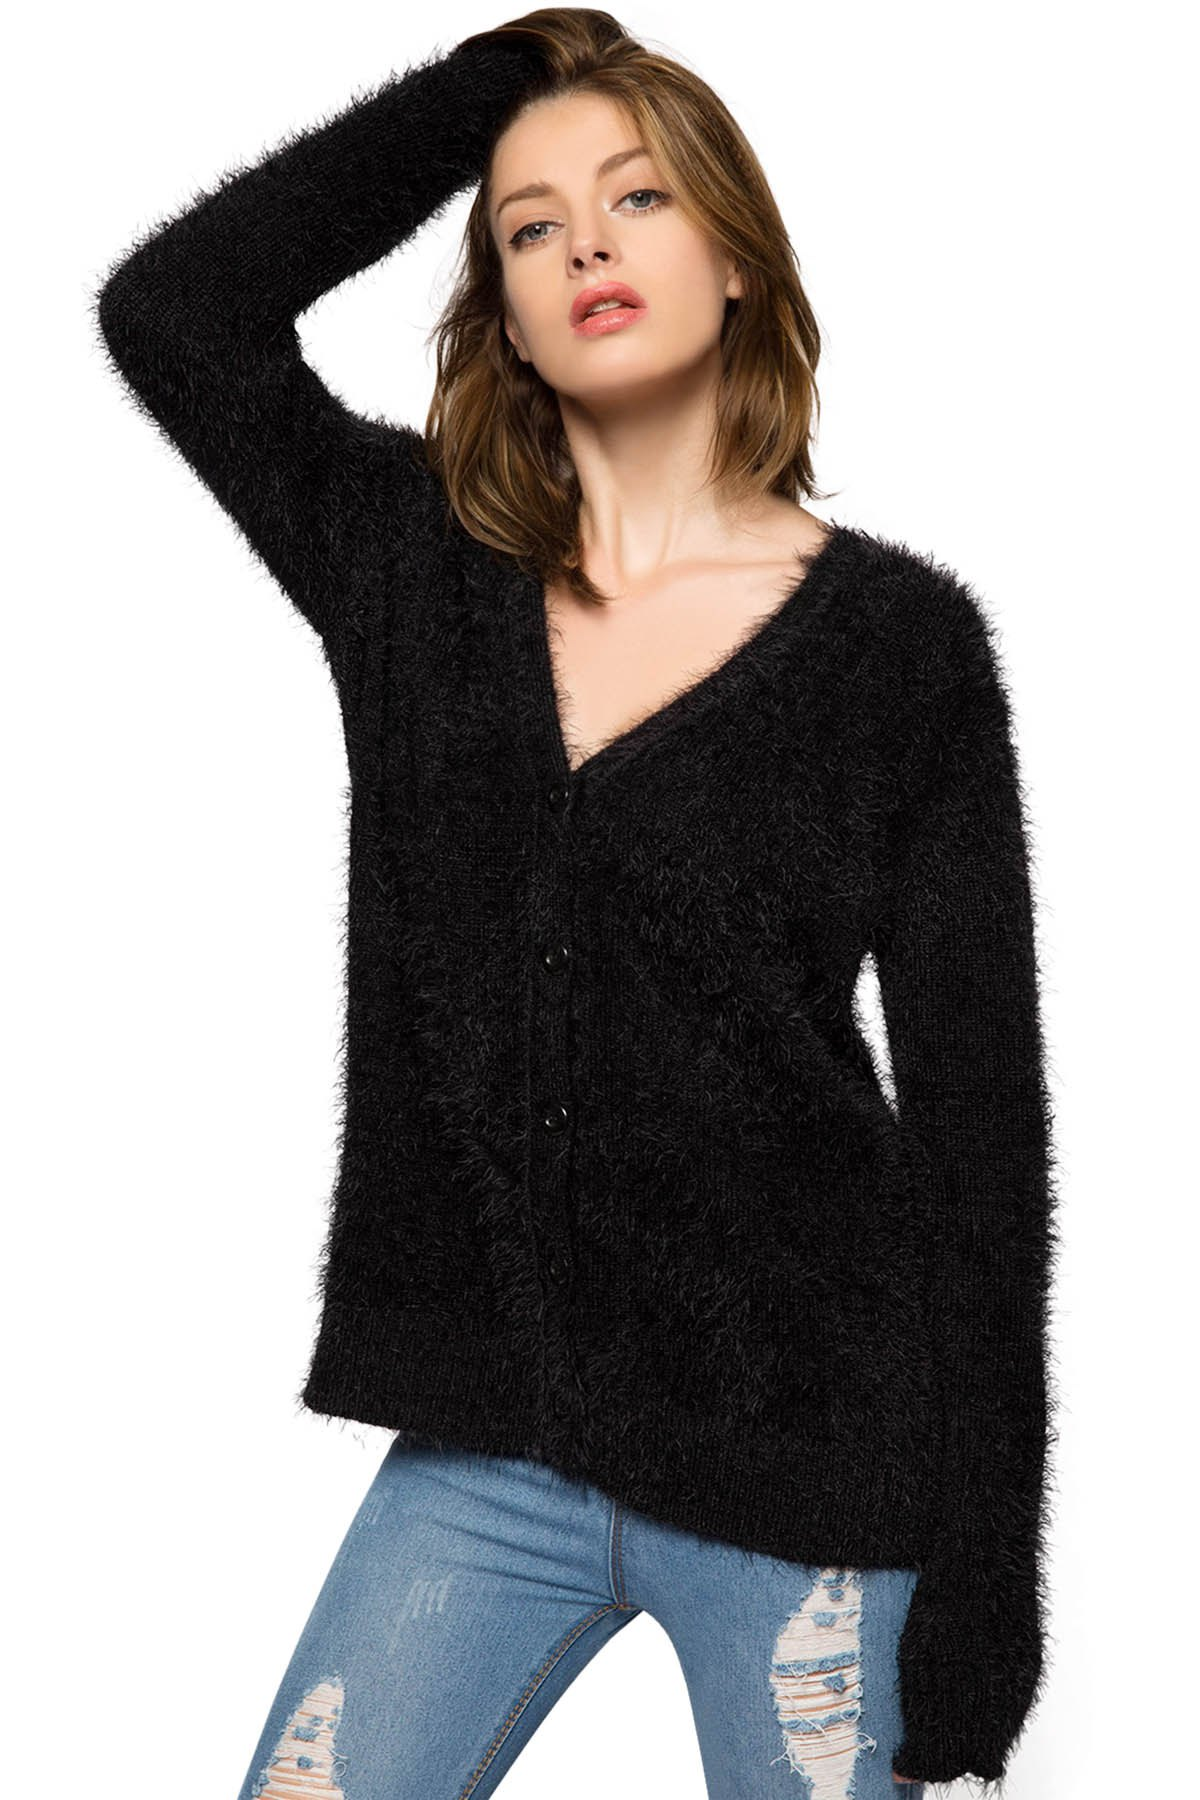 Collarless Long Sleeve Single-Breasted Black Mohair Cardigan